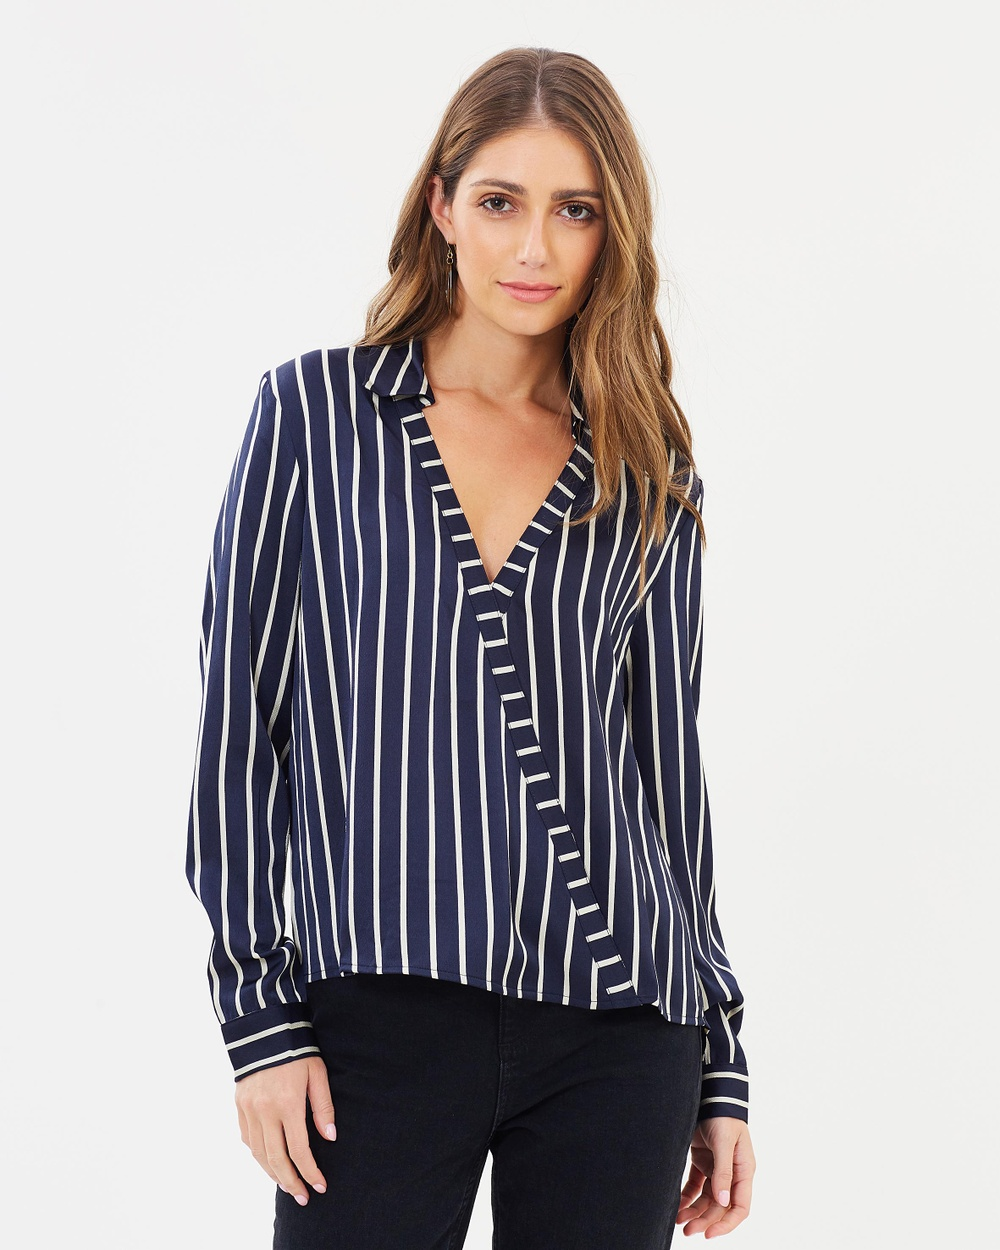 Fresh Soul Pace Top Tops Navy Stripe Pace Top